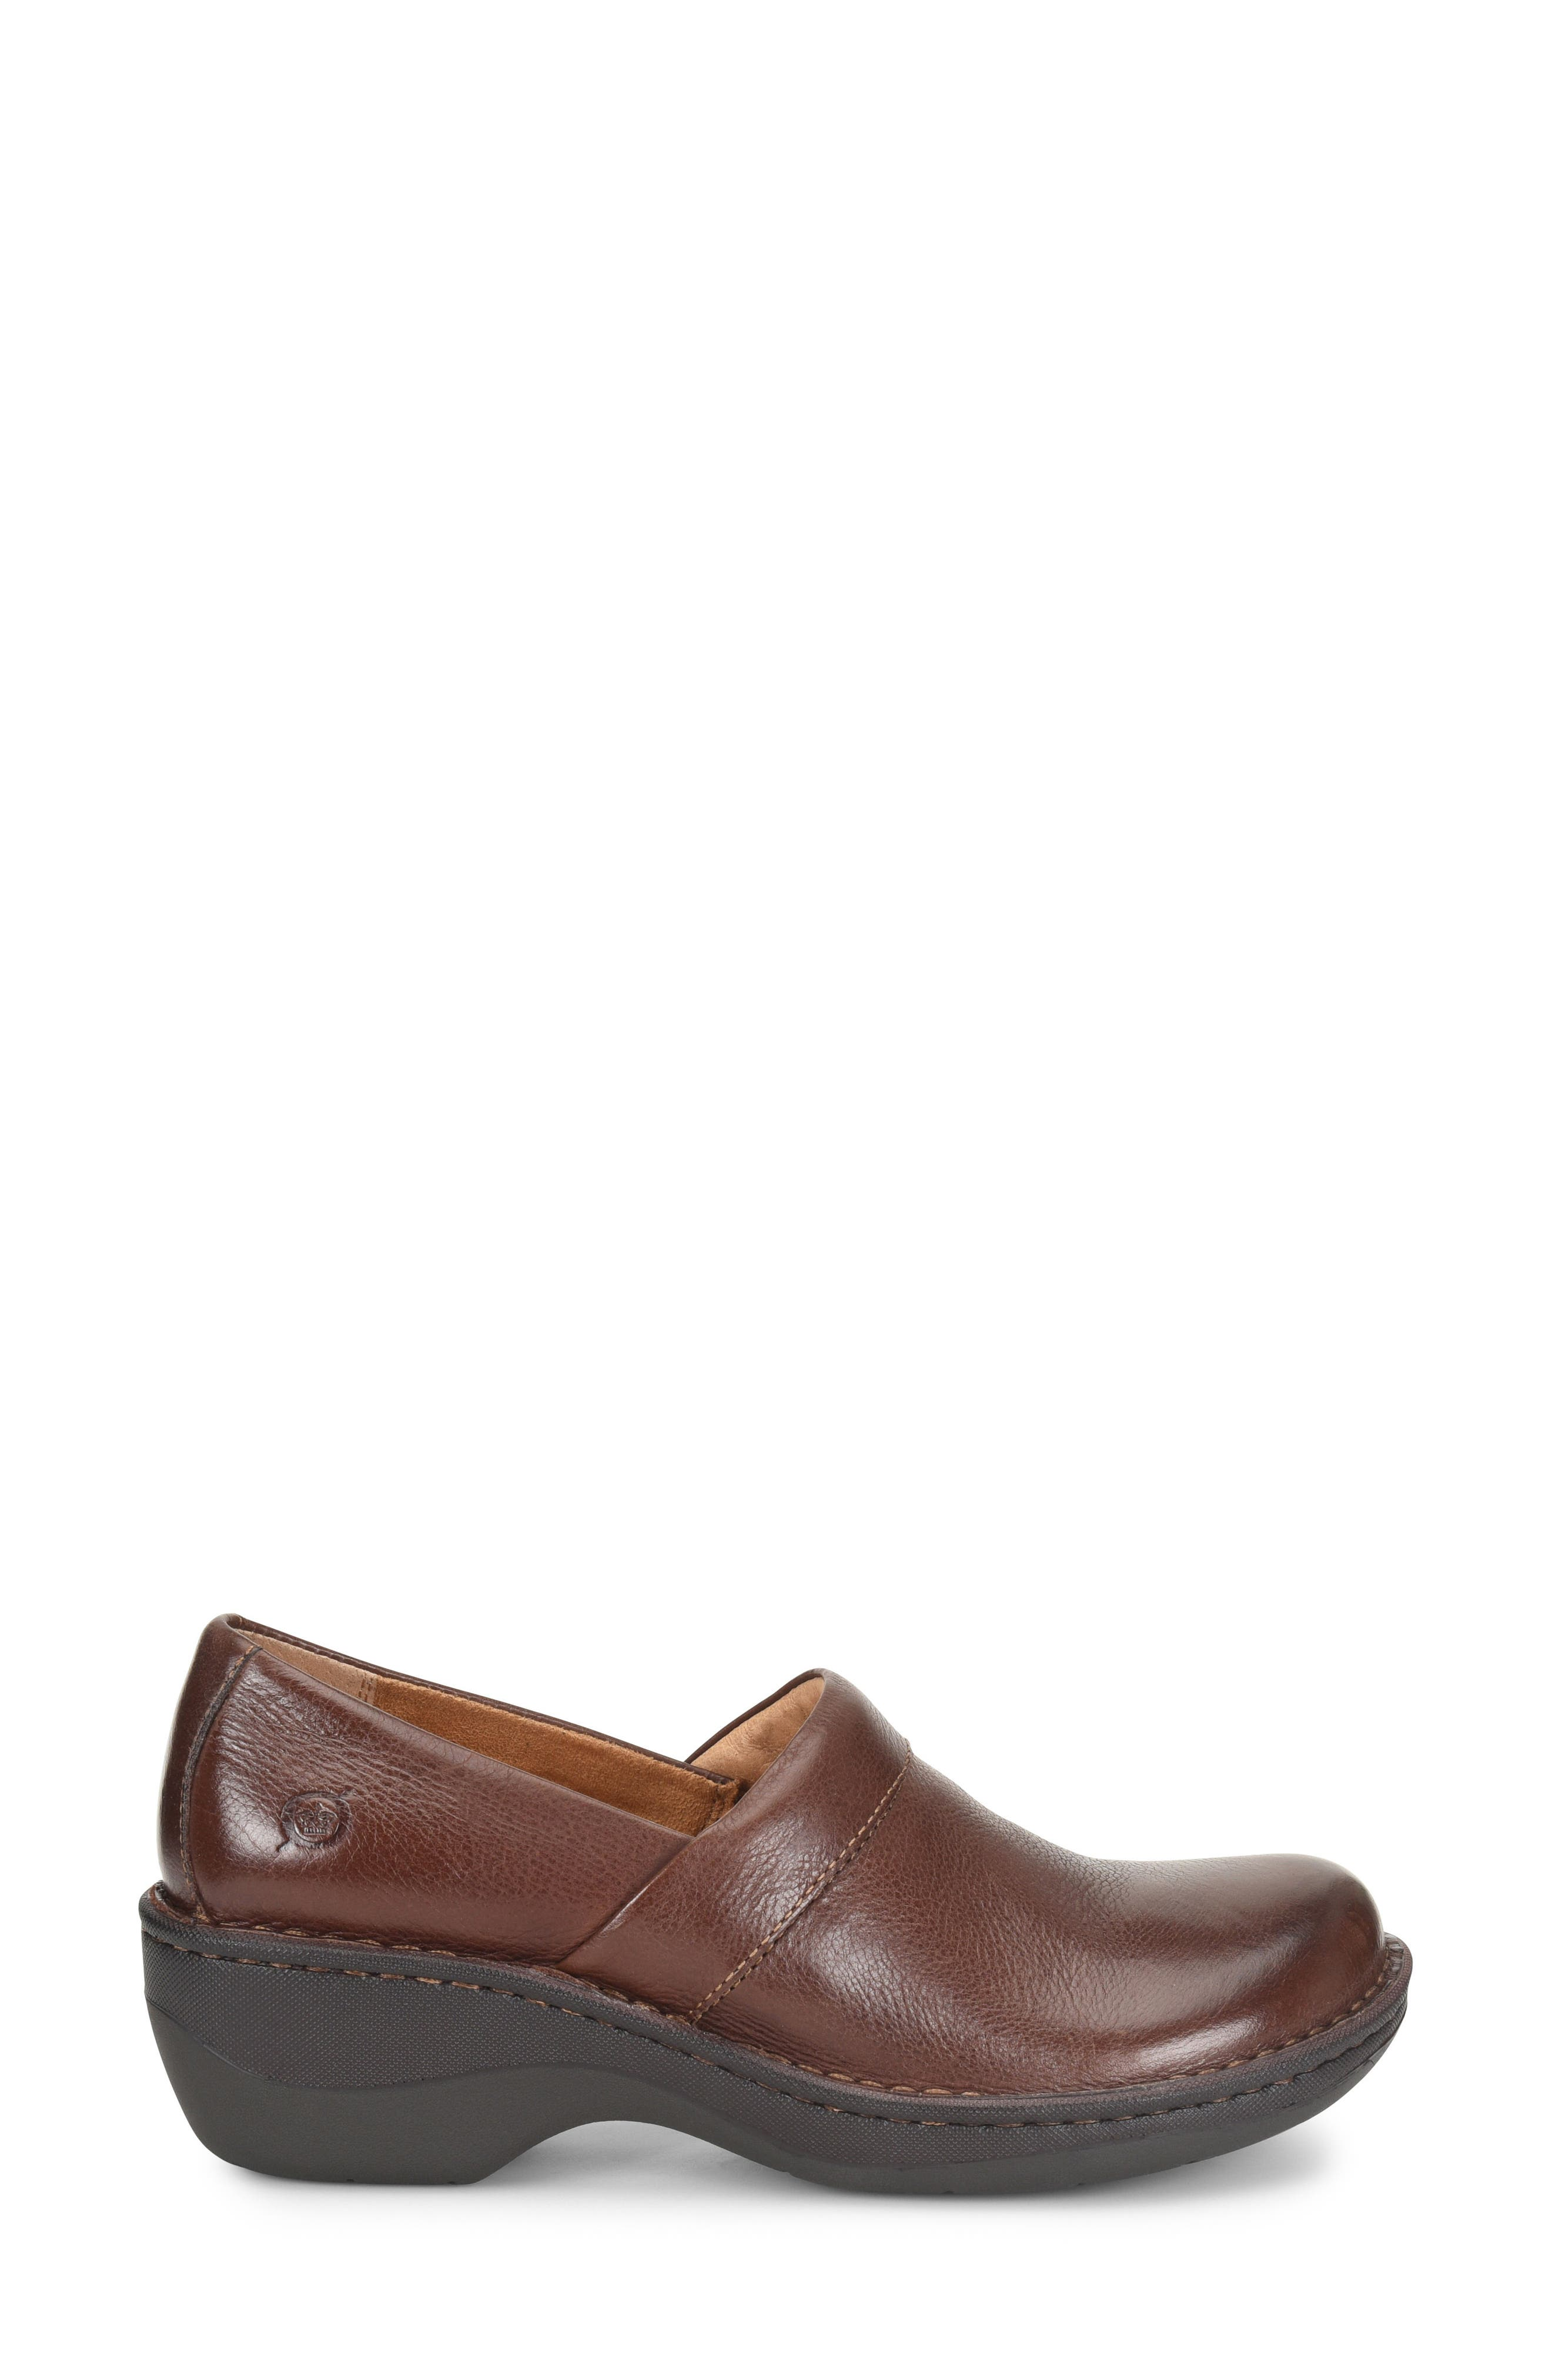 Toby Duo Clog,                             Alternate thumbnail 3, color,                             Chocolate Leather